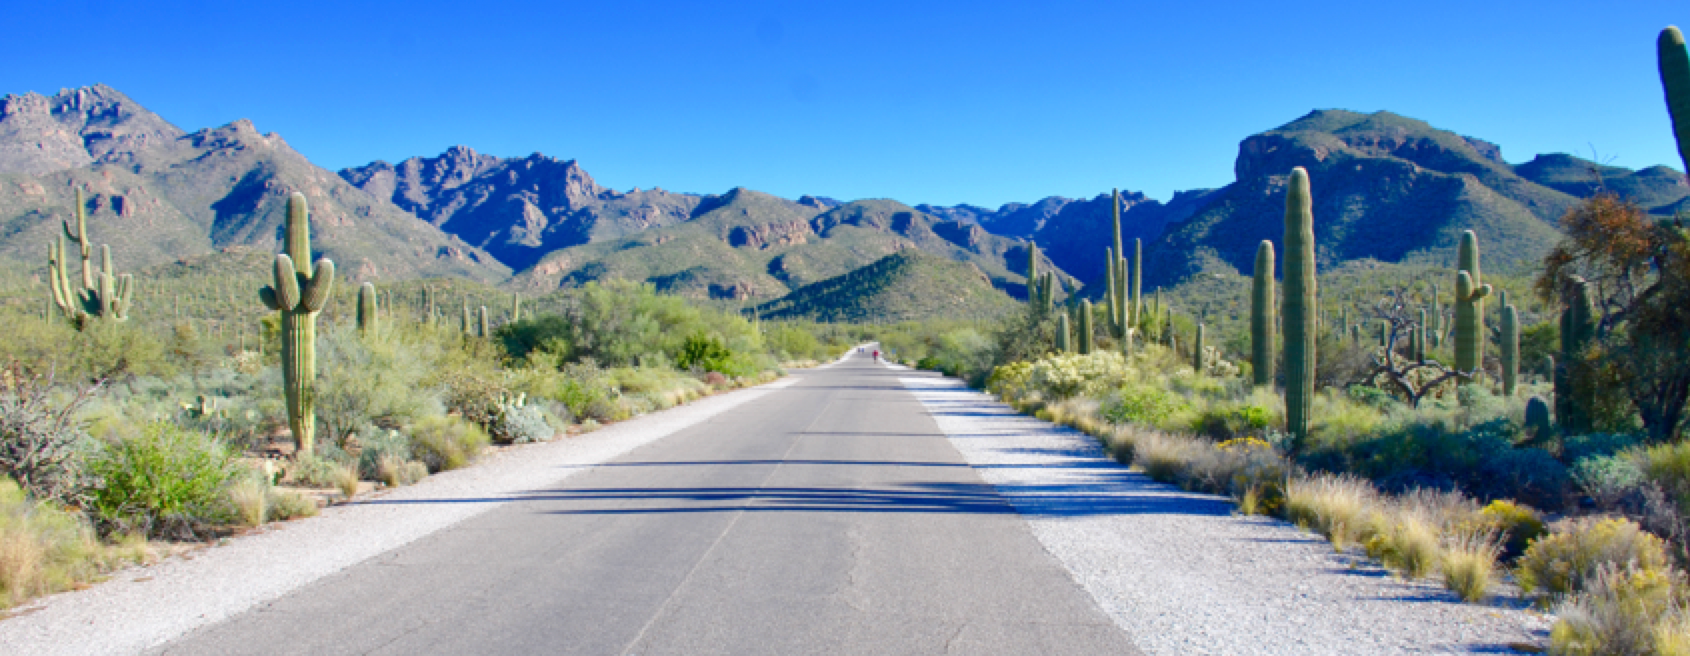 Entrance to Sabino Canyon prepares the visitor for the beauty that awaits - Discover Tucson discover tucson From Astronomy to Gastronomy: Discover Tucson at the 2019 INMR WORLD CONGRESS Entrance to Sabino Canyon prepares the visitor for the beauty that awaits